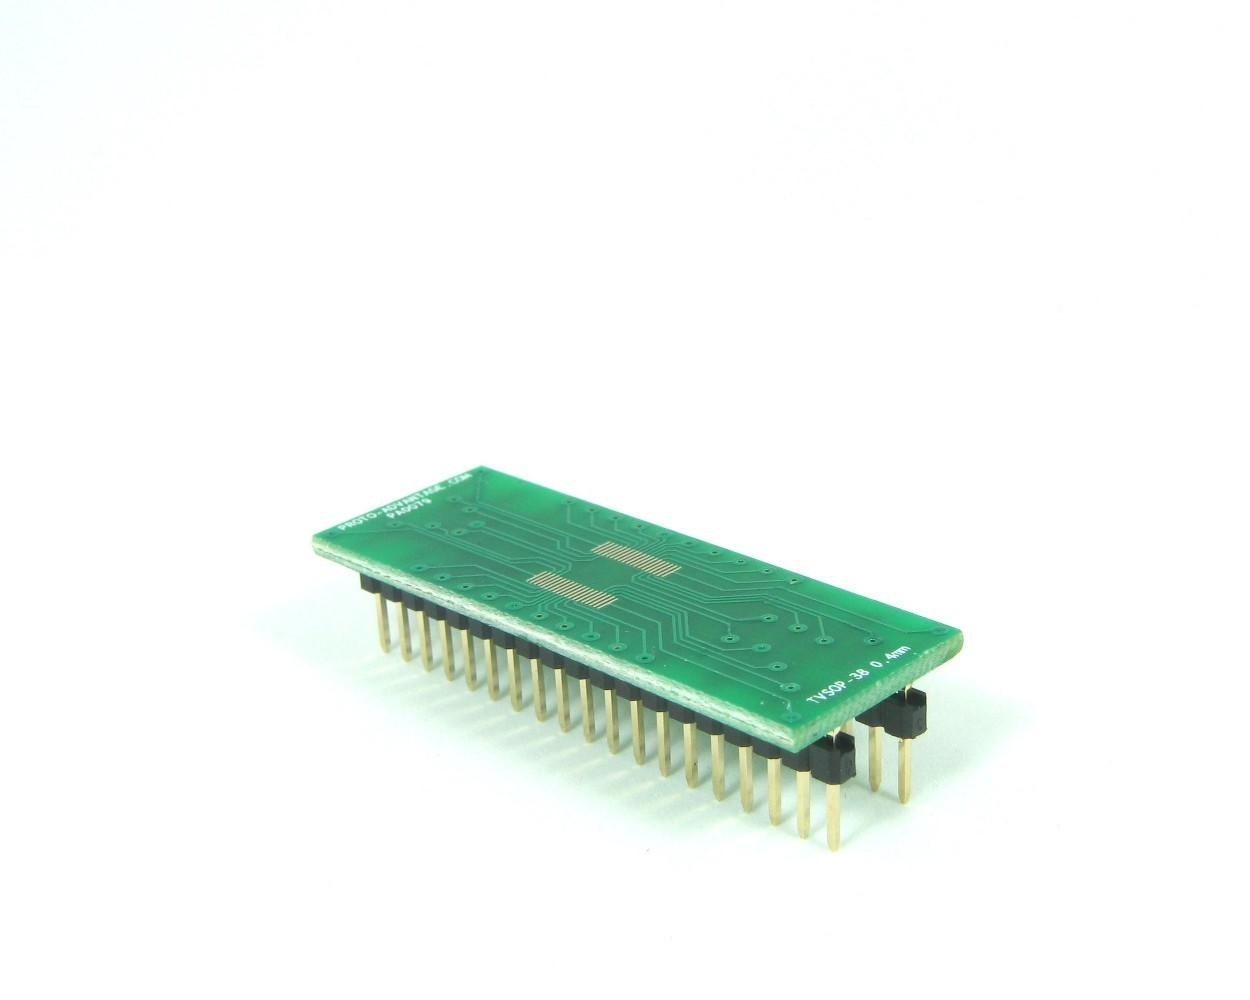 TVSOP-38 to DIP-38 SMT Adapter (0.4 mm pitch)